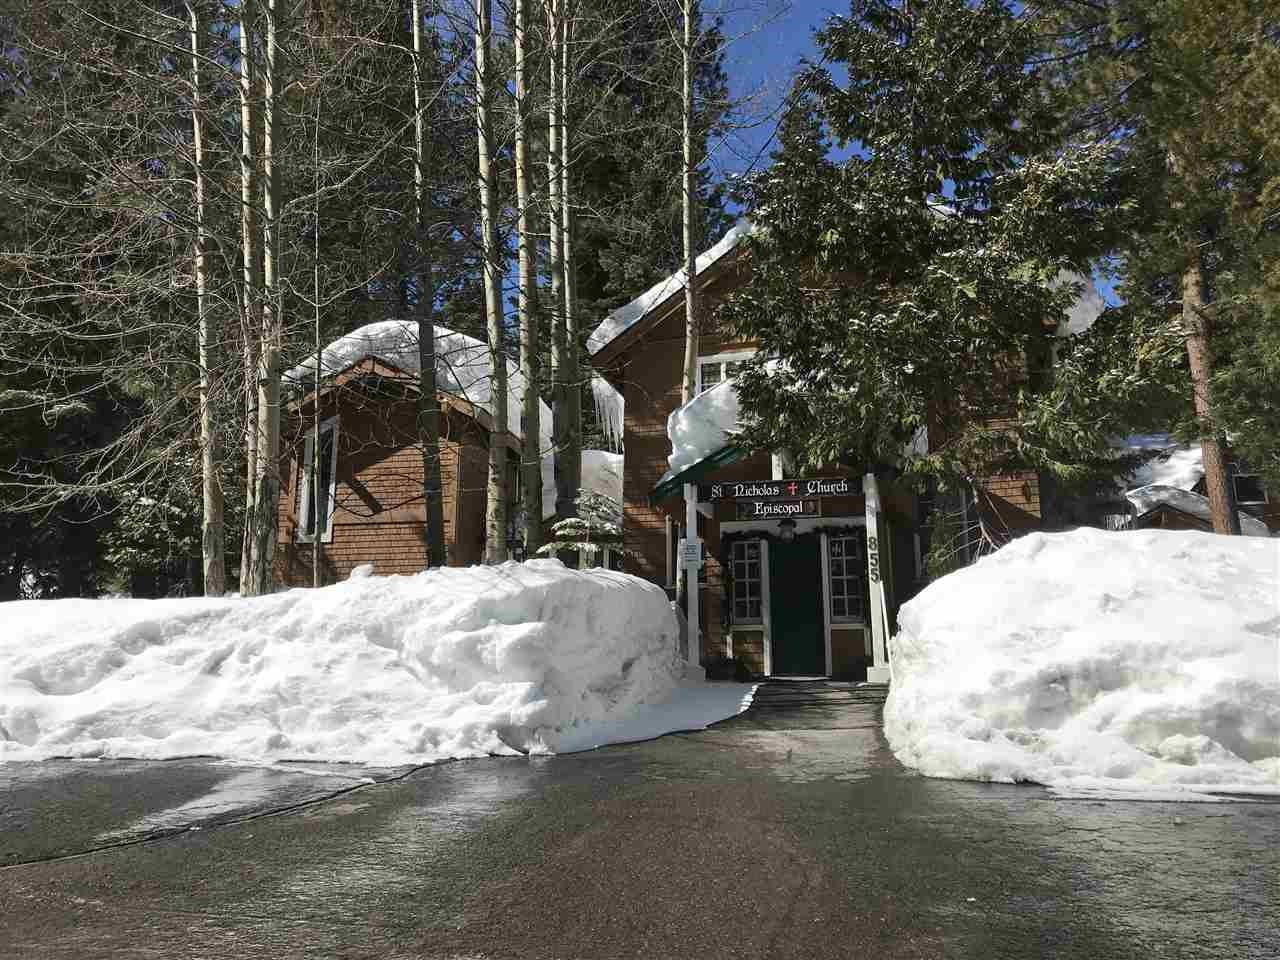 Camp Noel Porter, 855 West Lake Blvd on Lake Tahoe's North Shore